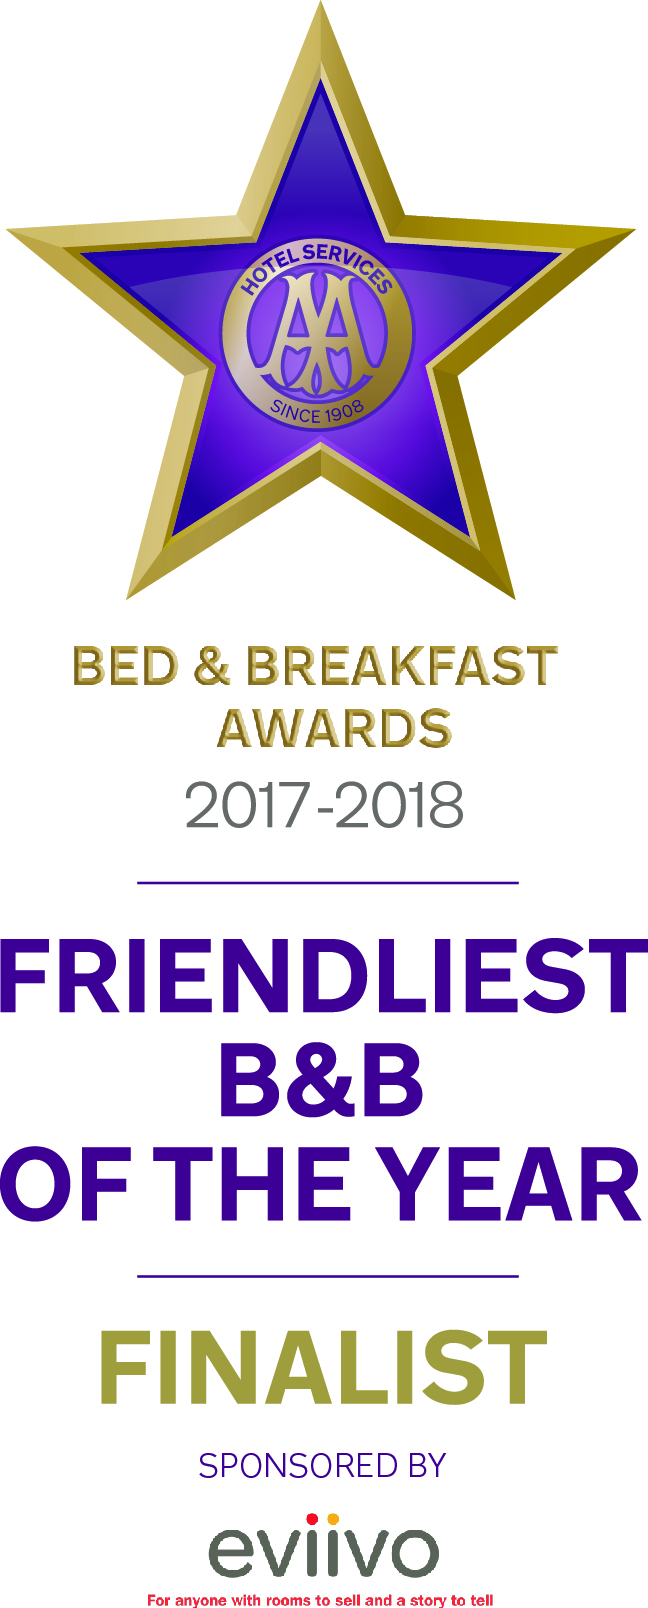 AA Finalist Friendliest B&B if the Year